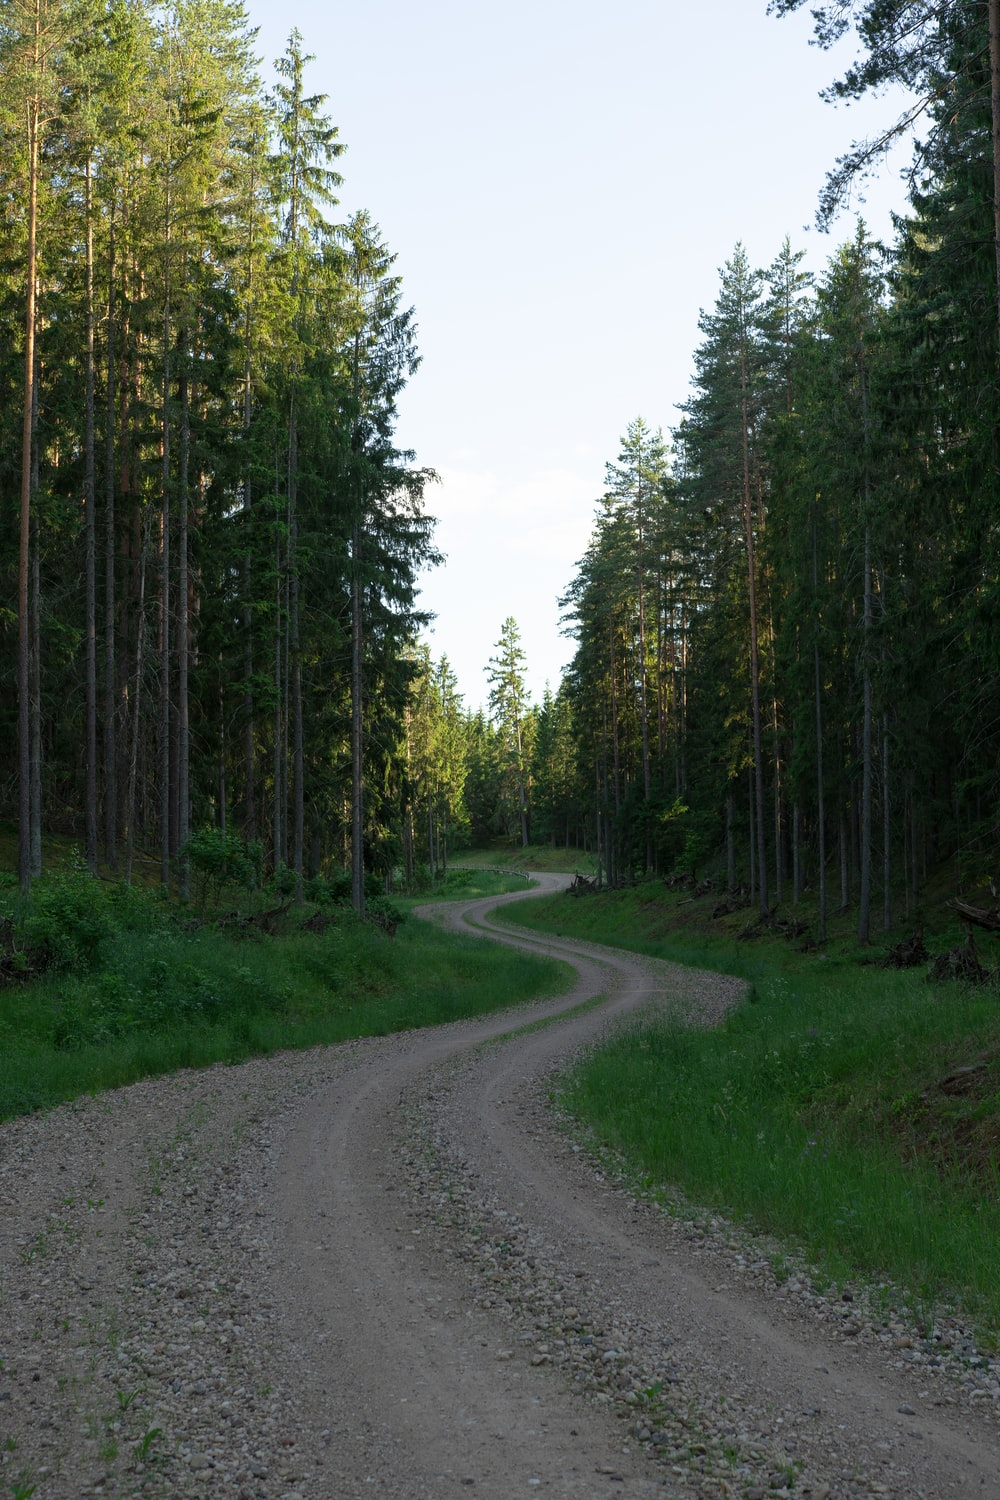 gray concrete road between green trees during daytime